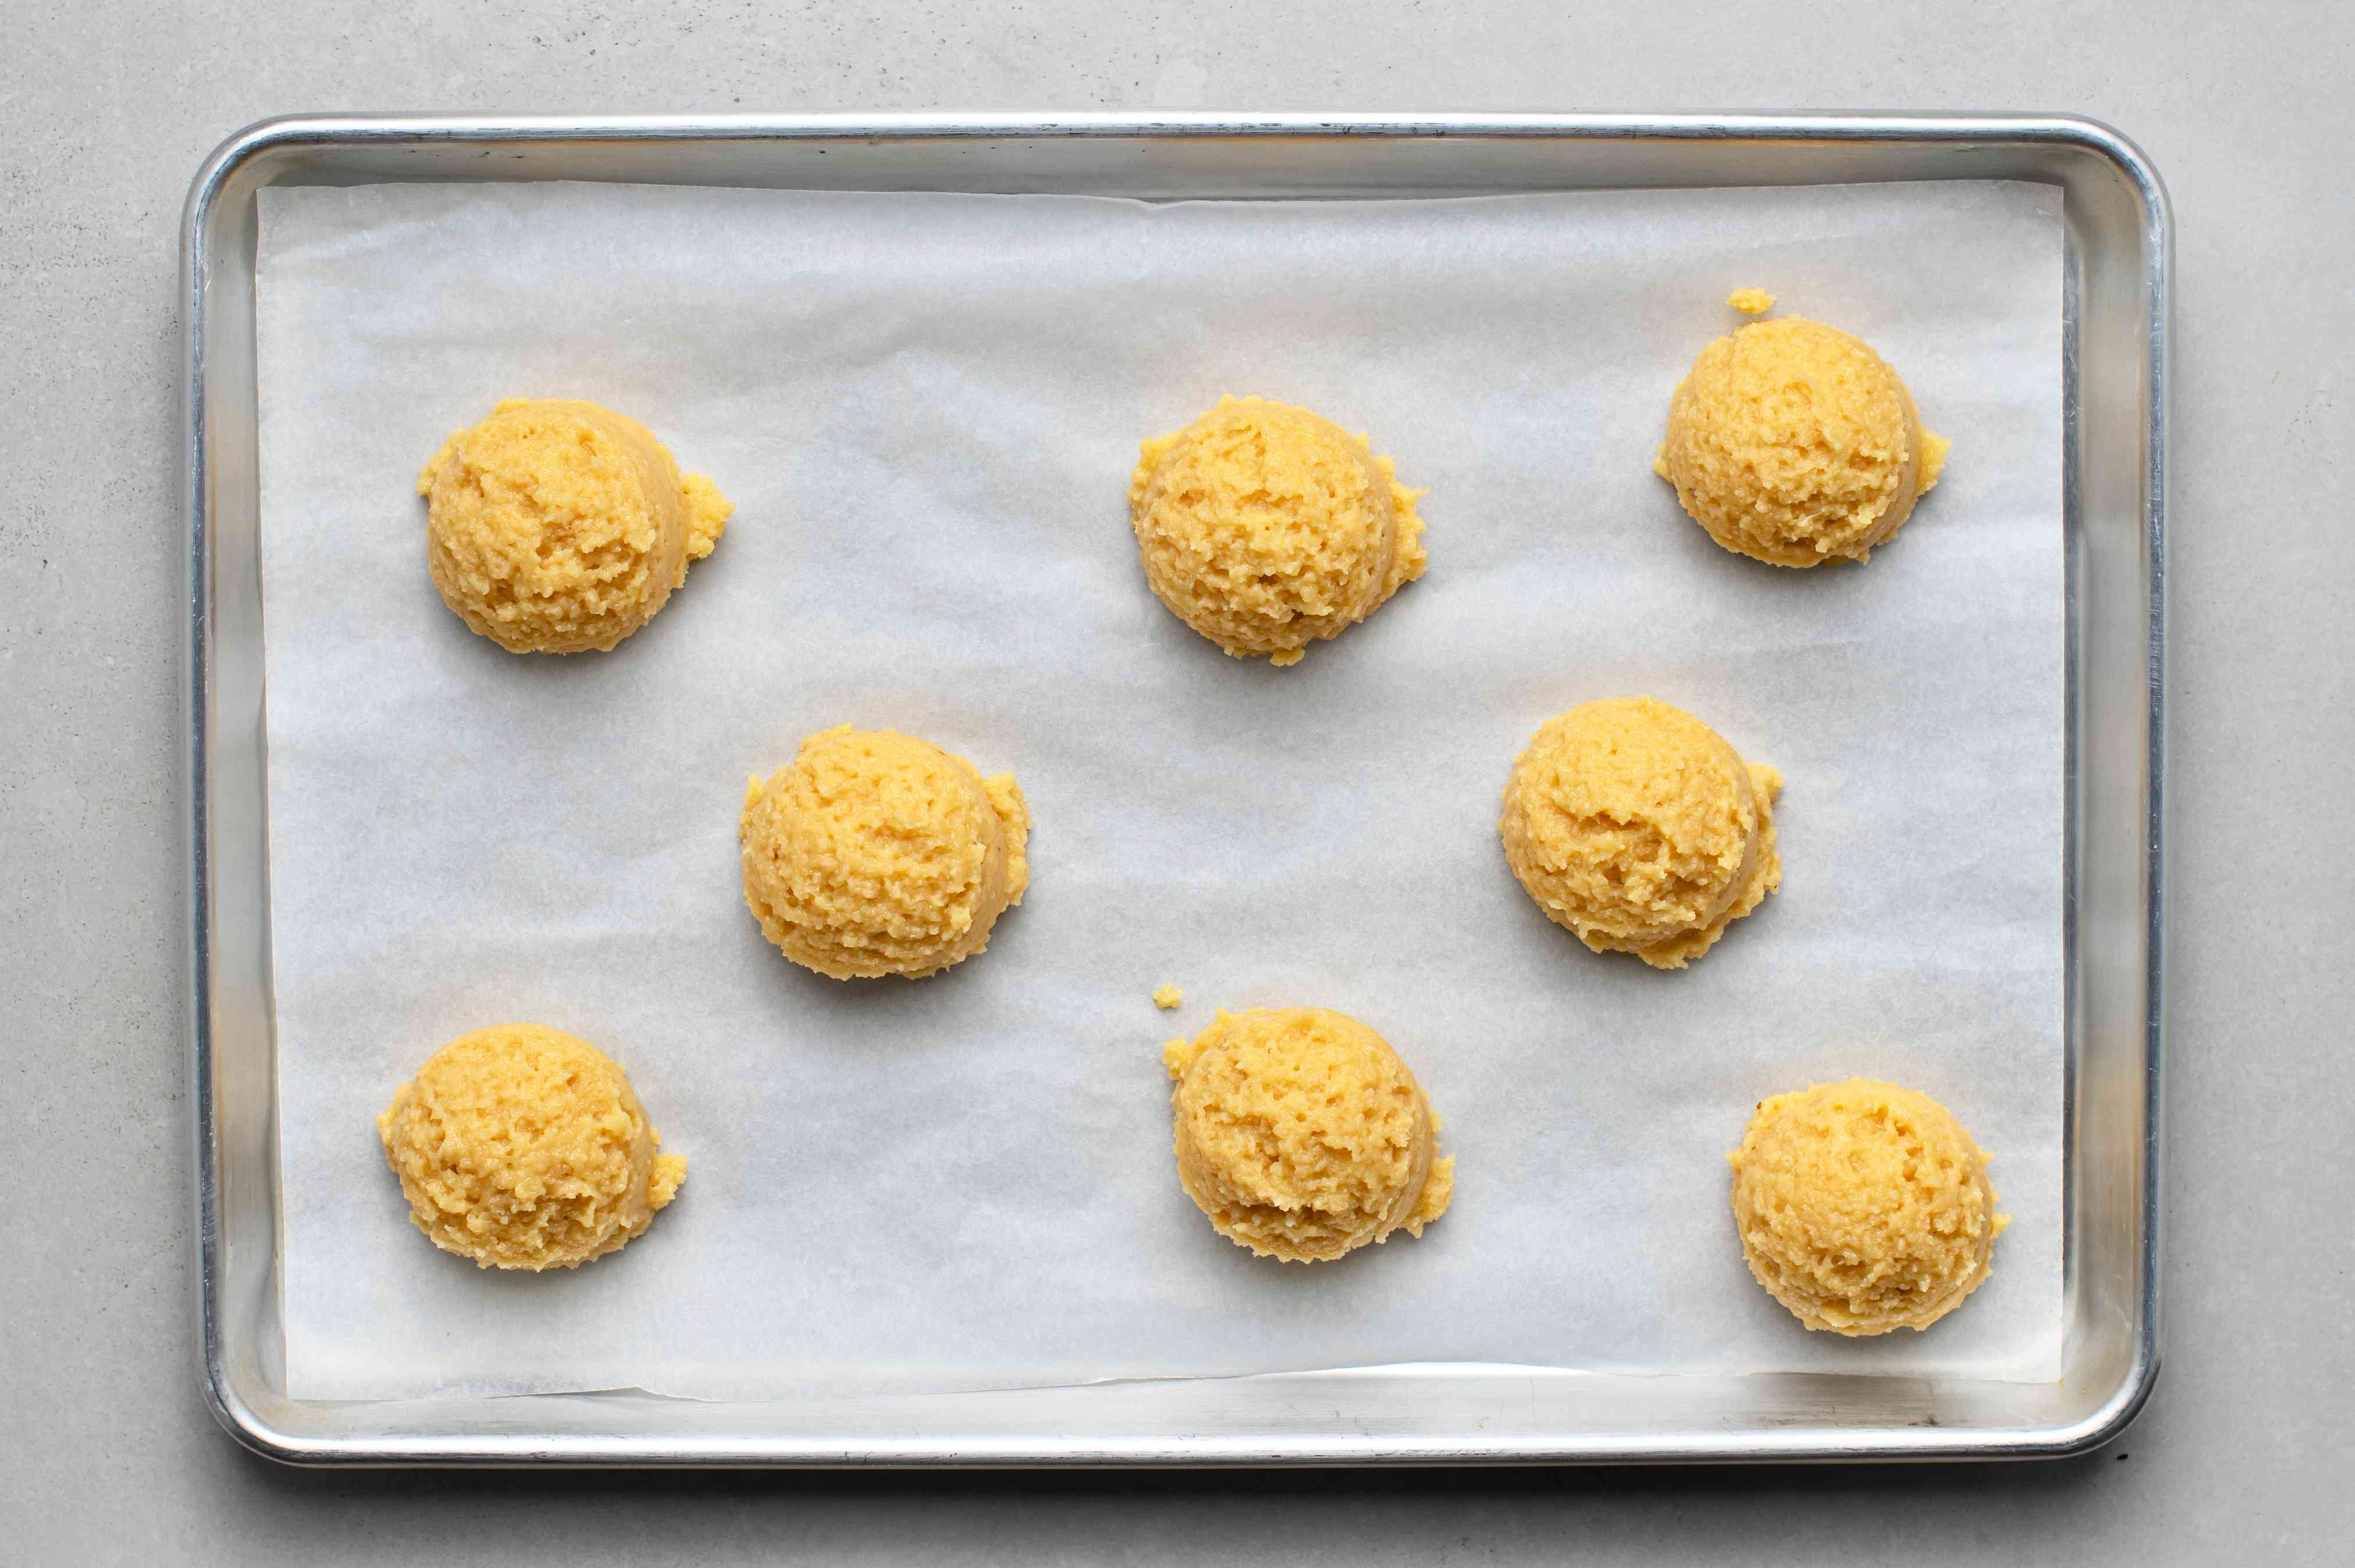 Drop large spoonfuls of dough mixture onto a flat baking sheet lined with parchment paper